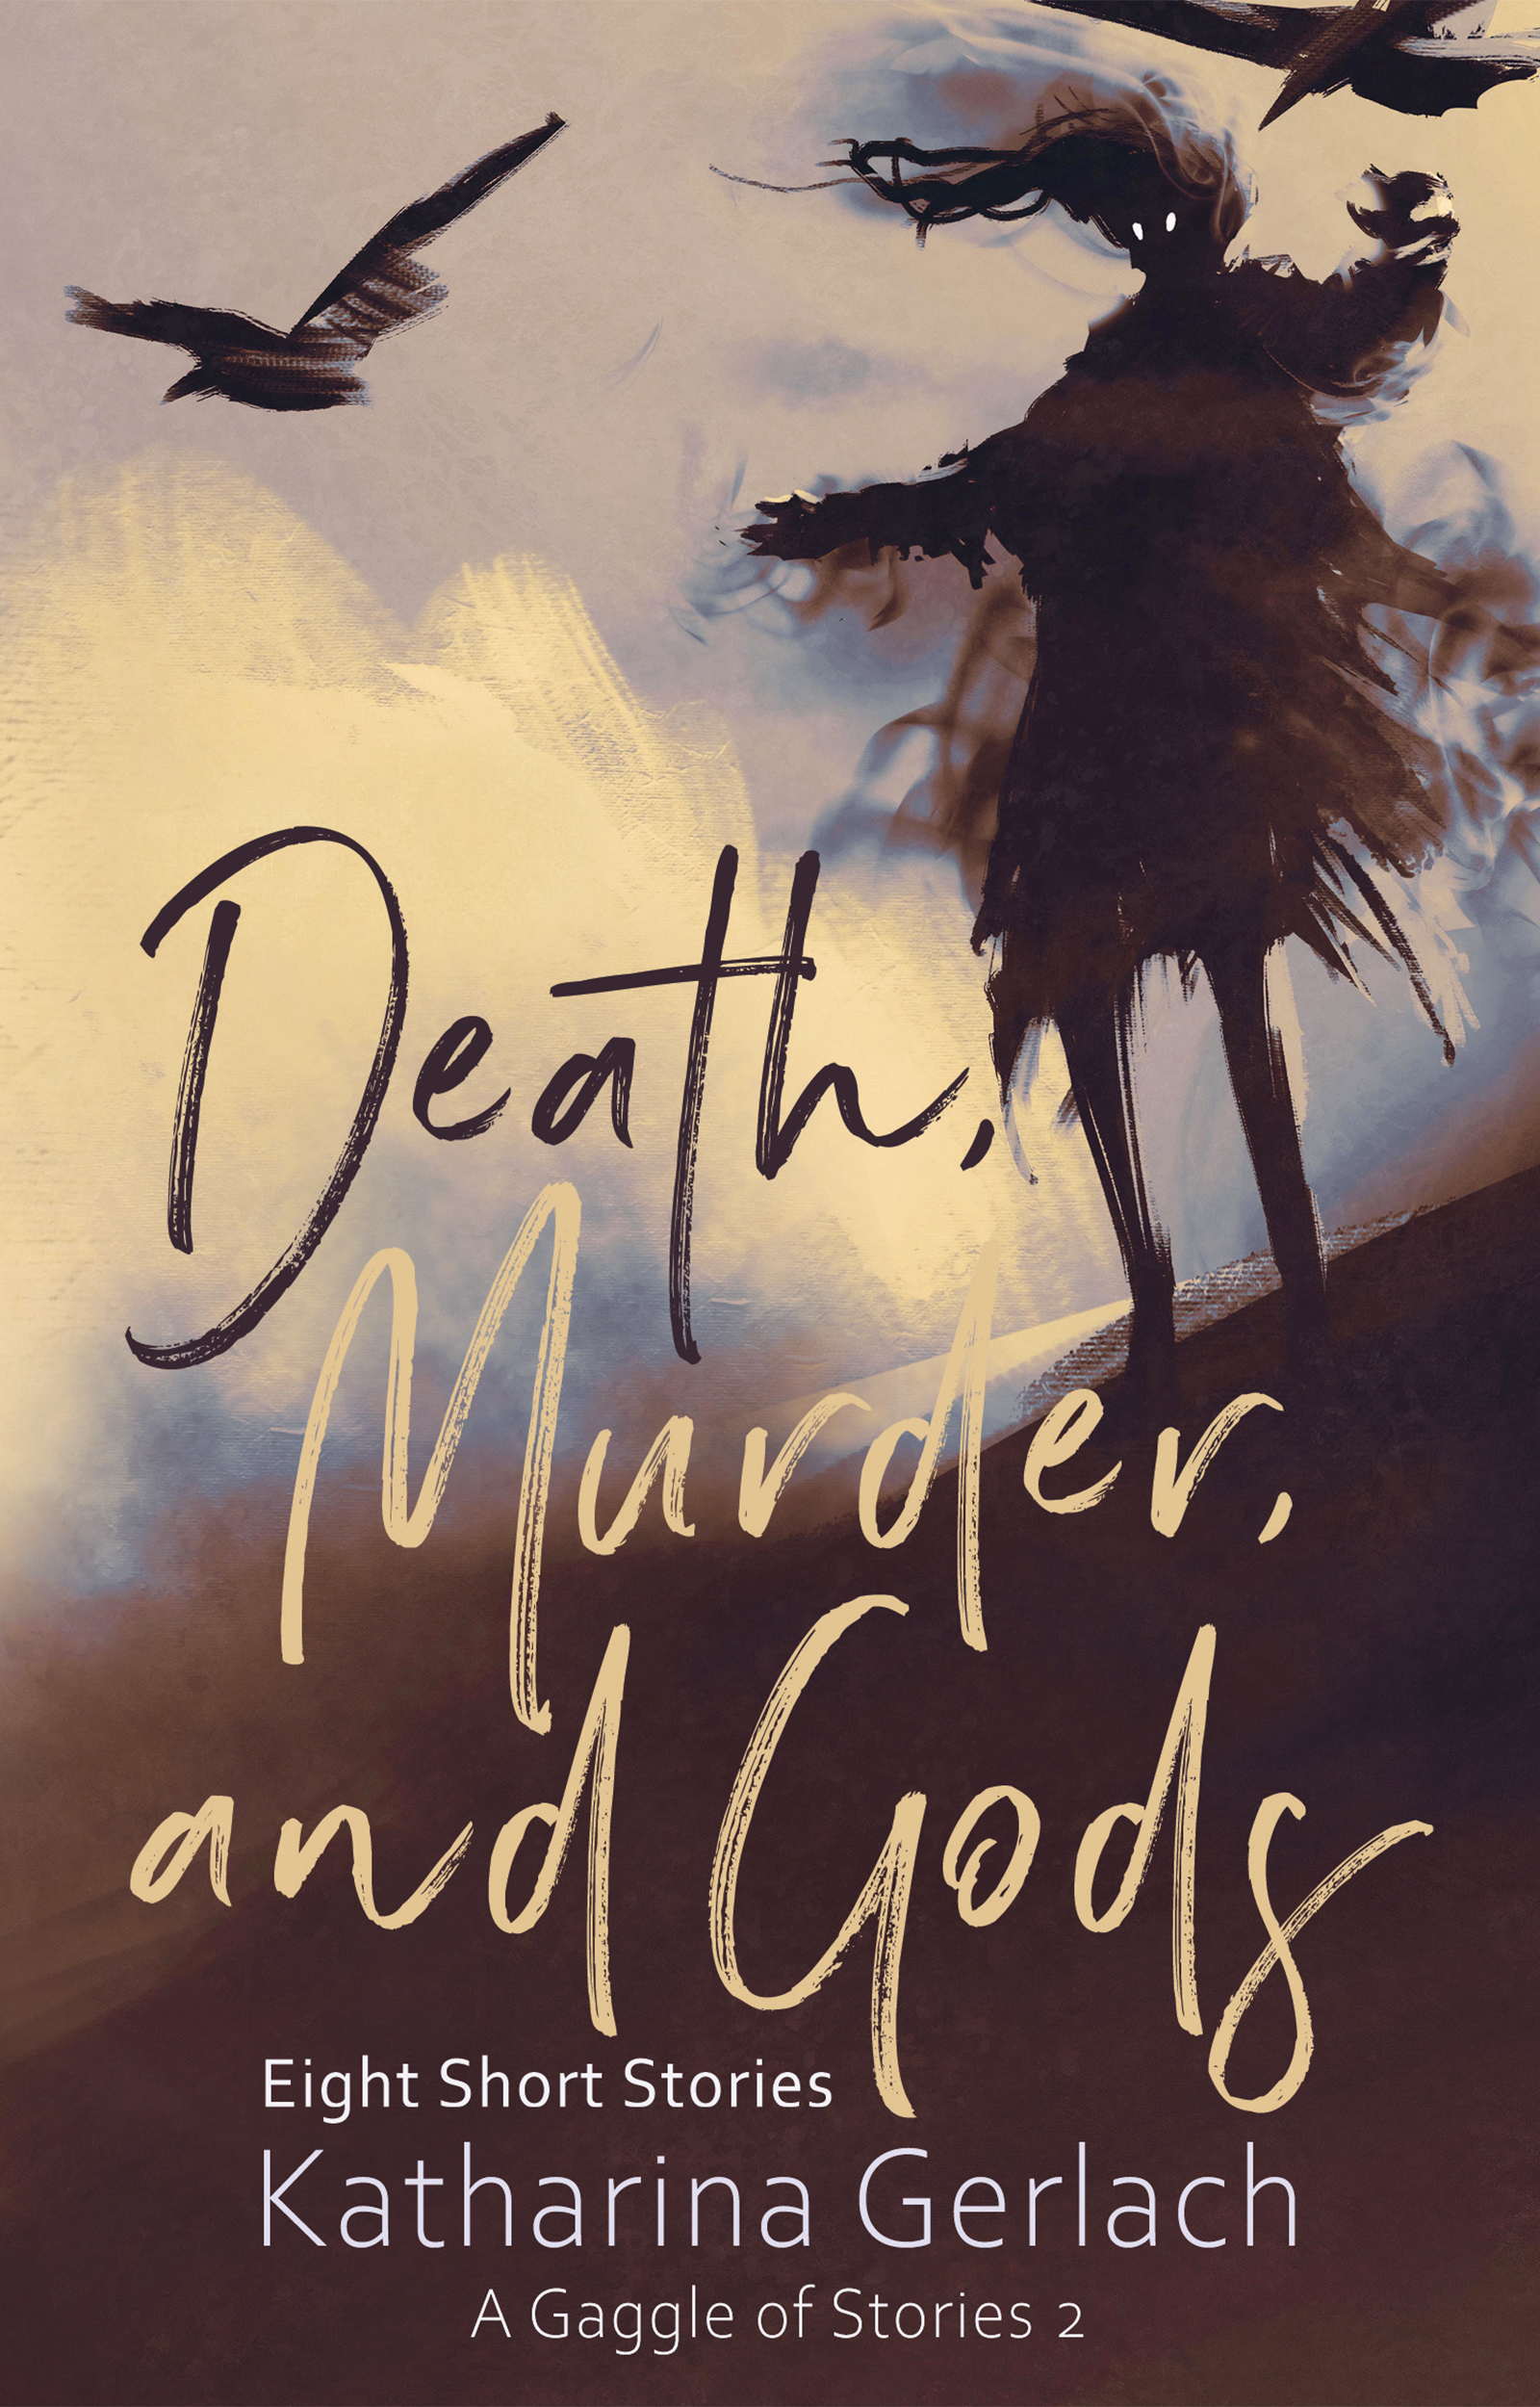 A Gaggle of Stories 2: Death, Murder, and Gods